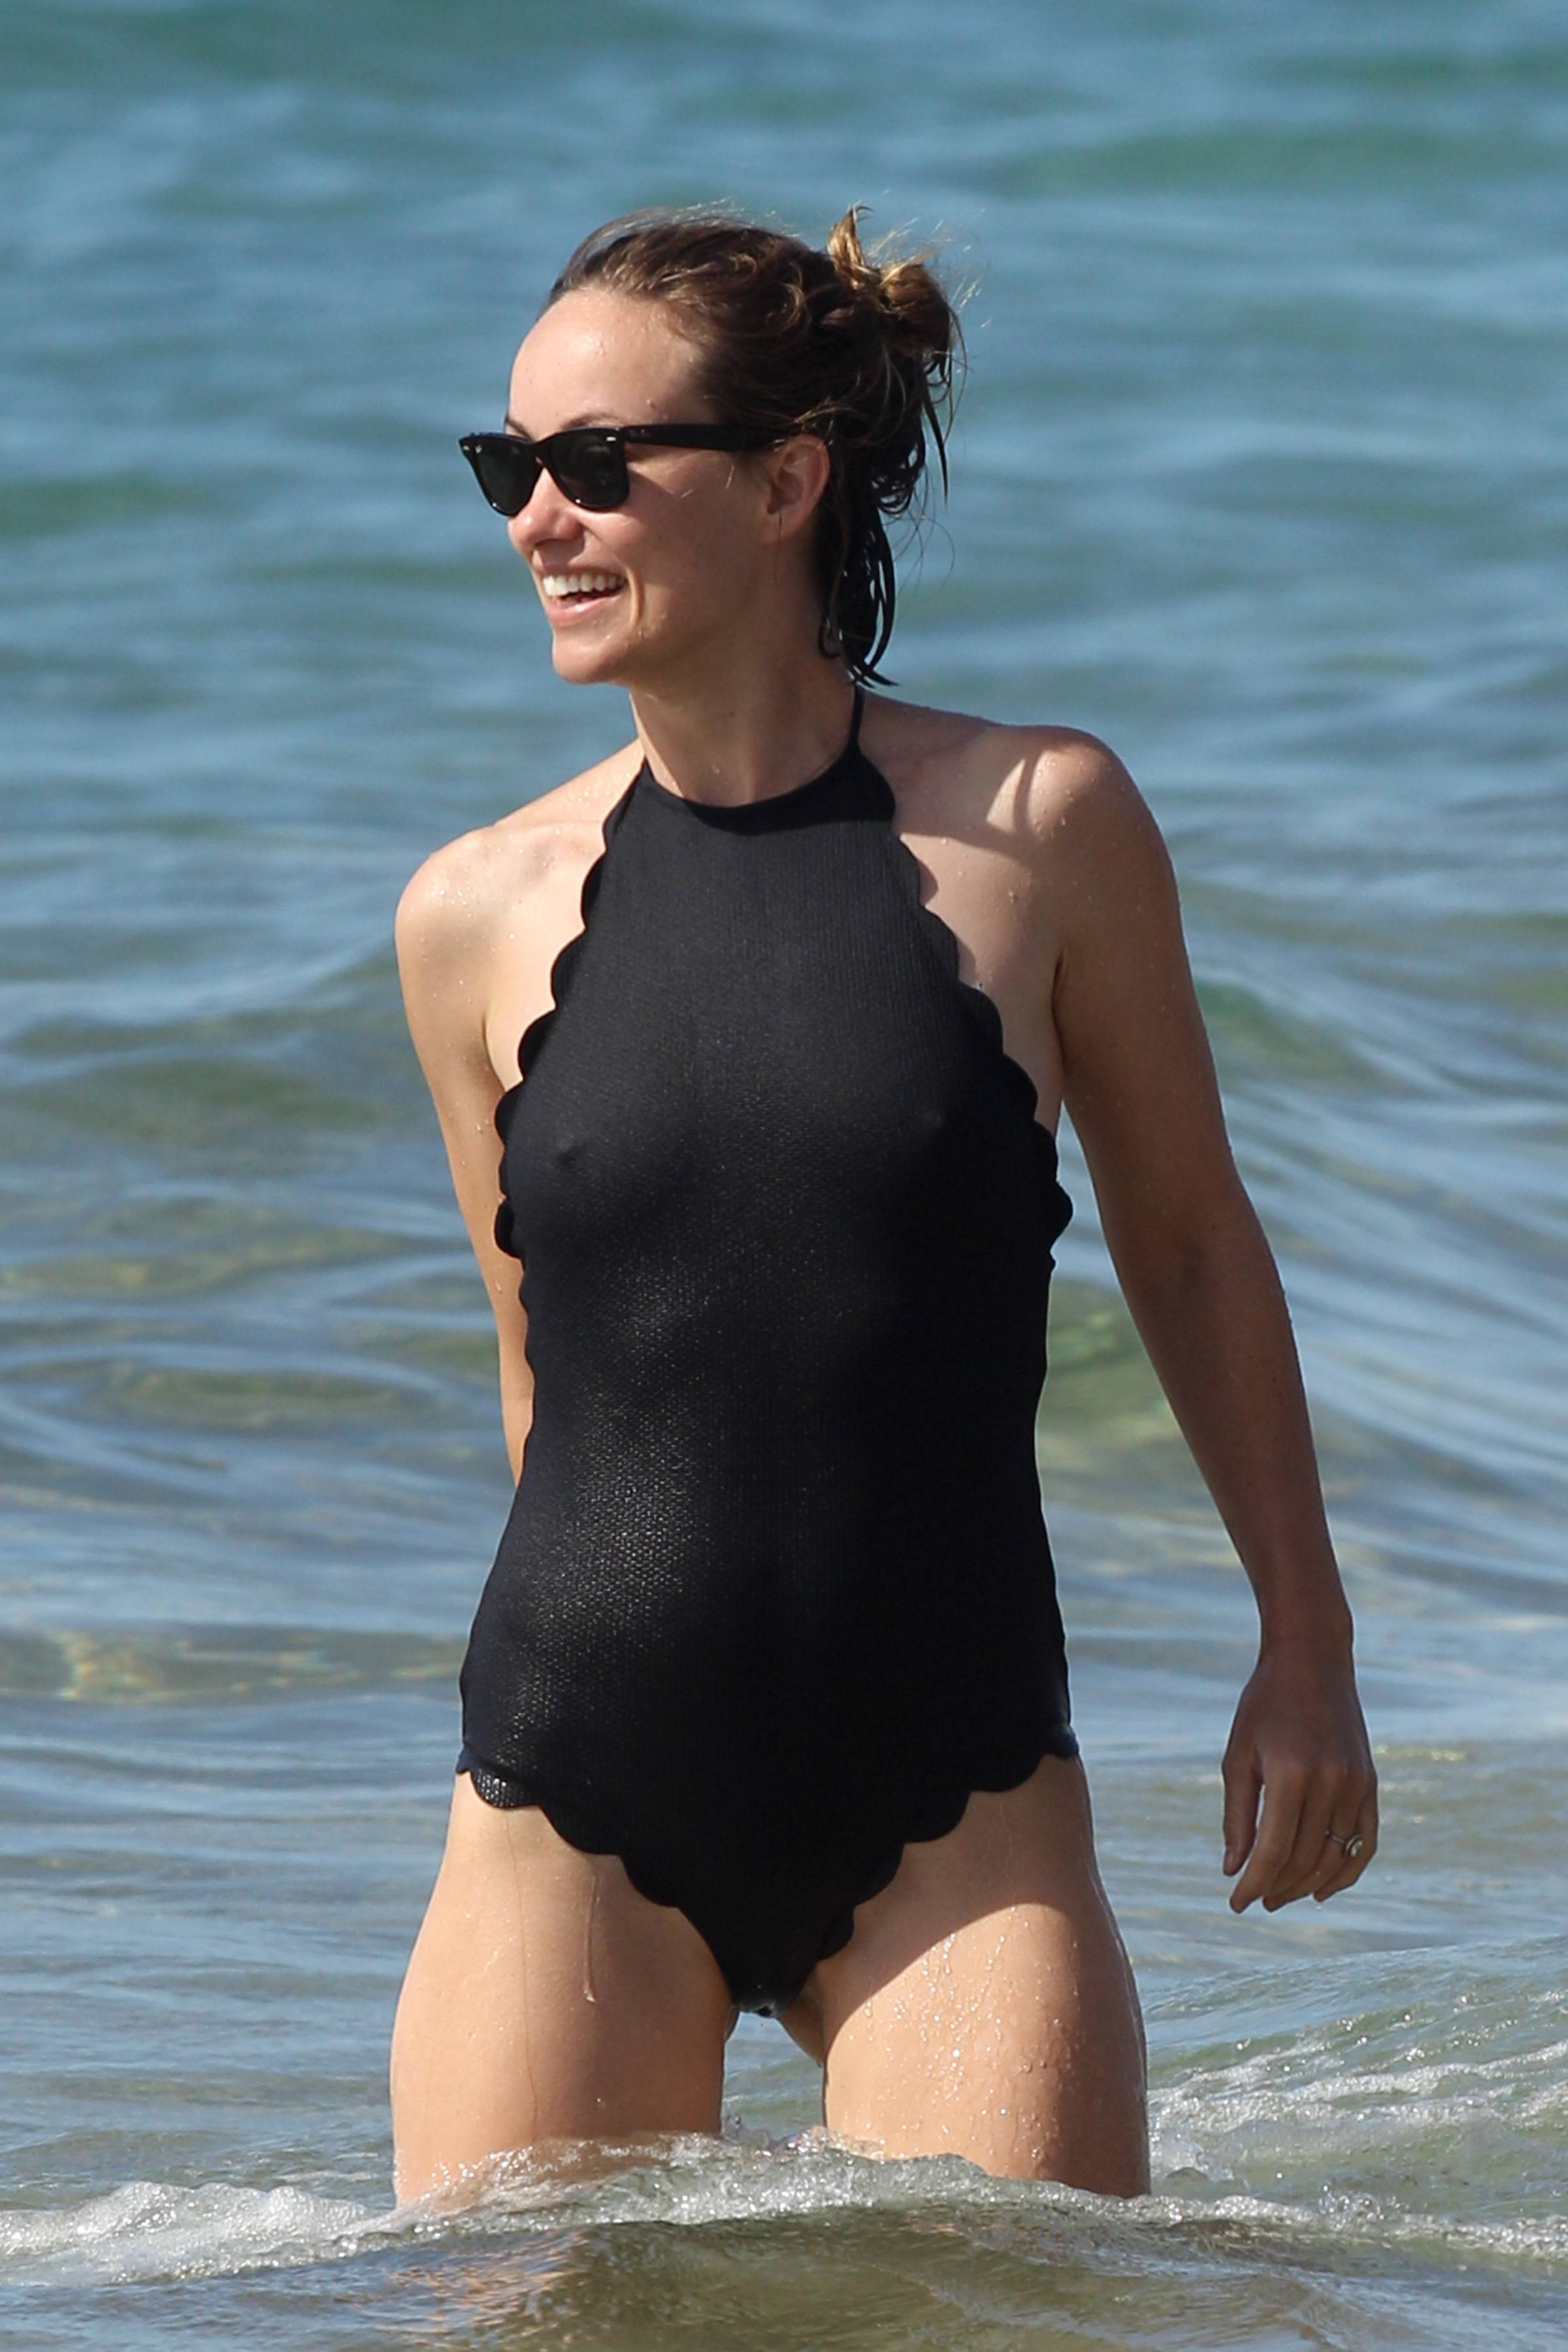 Olivia Wilde – spotted in a black swimsuit on the beach in Hawaii 11/28/17